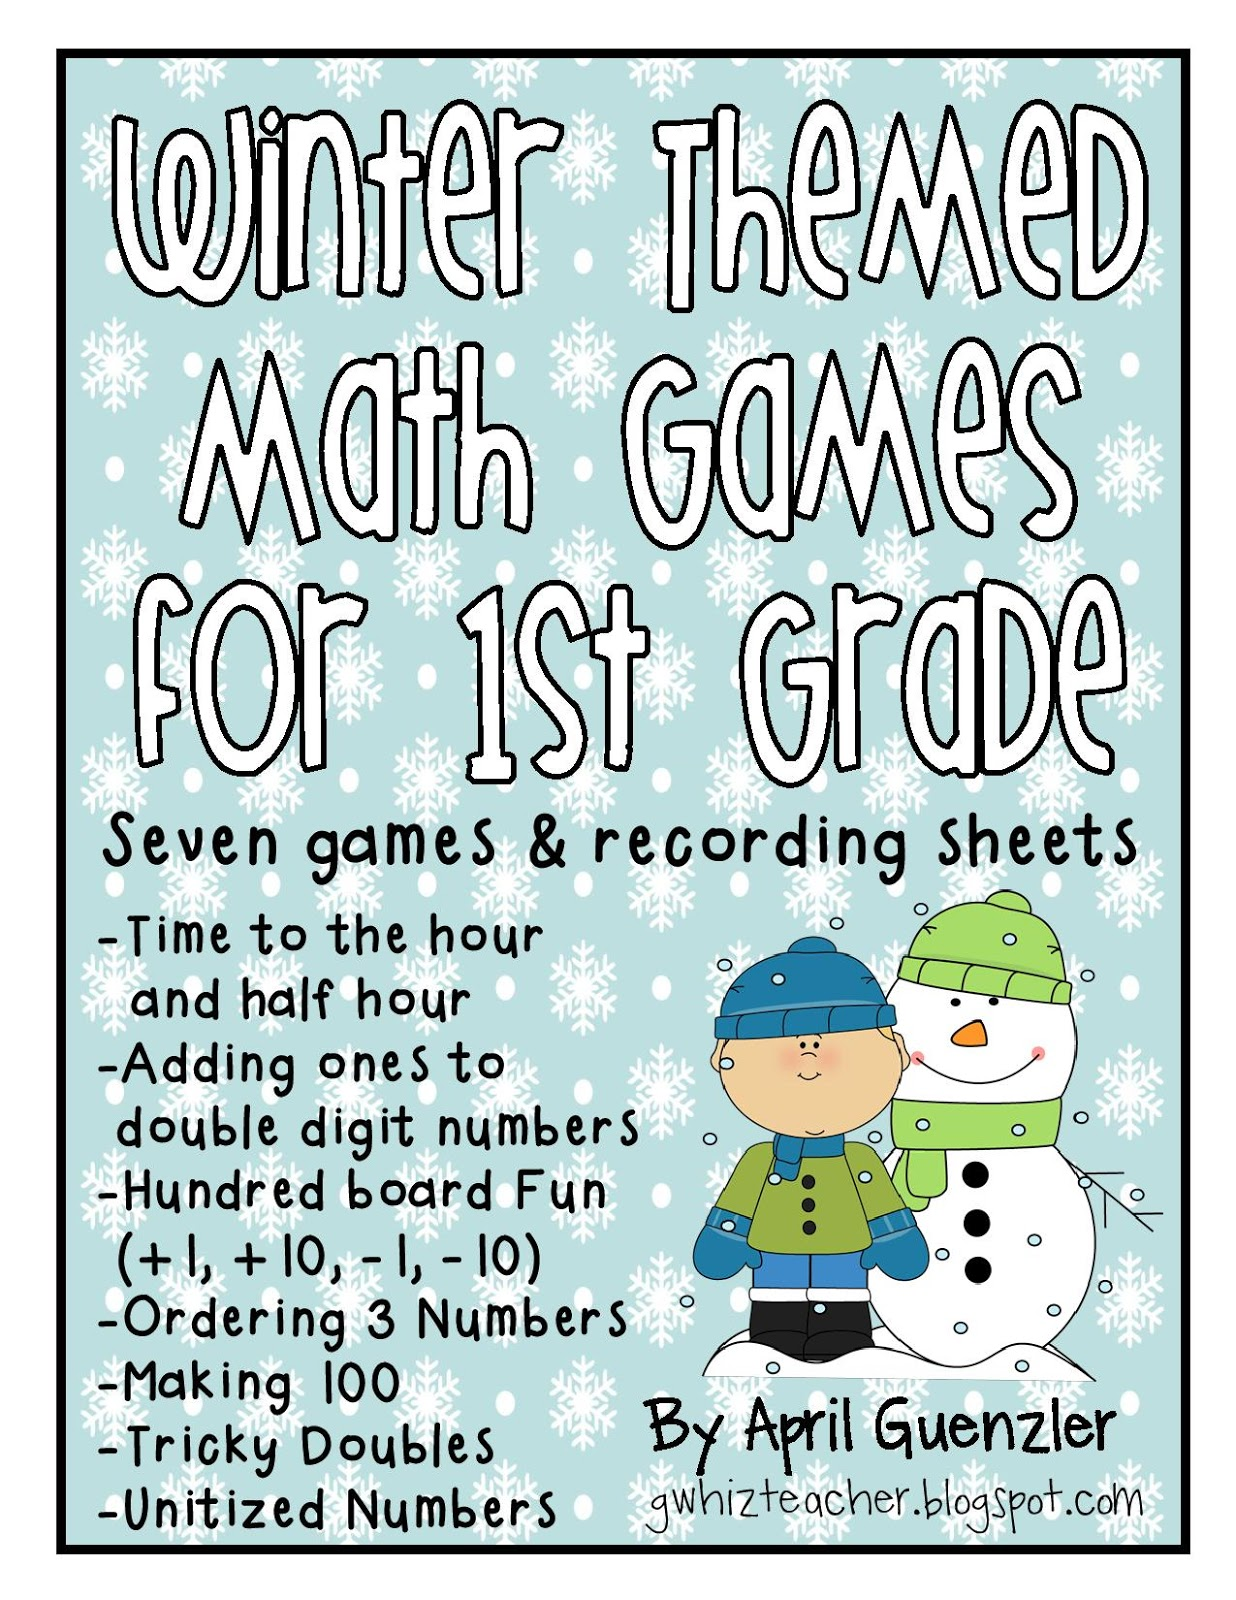 gwhizteacher: Winter Math Games